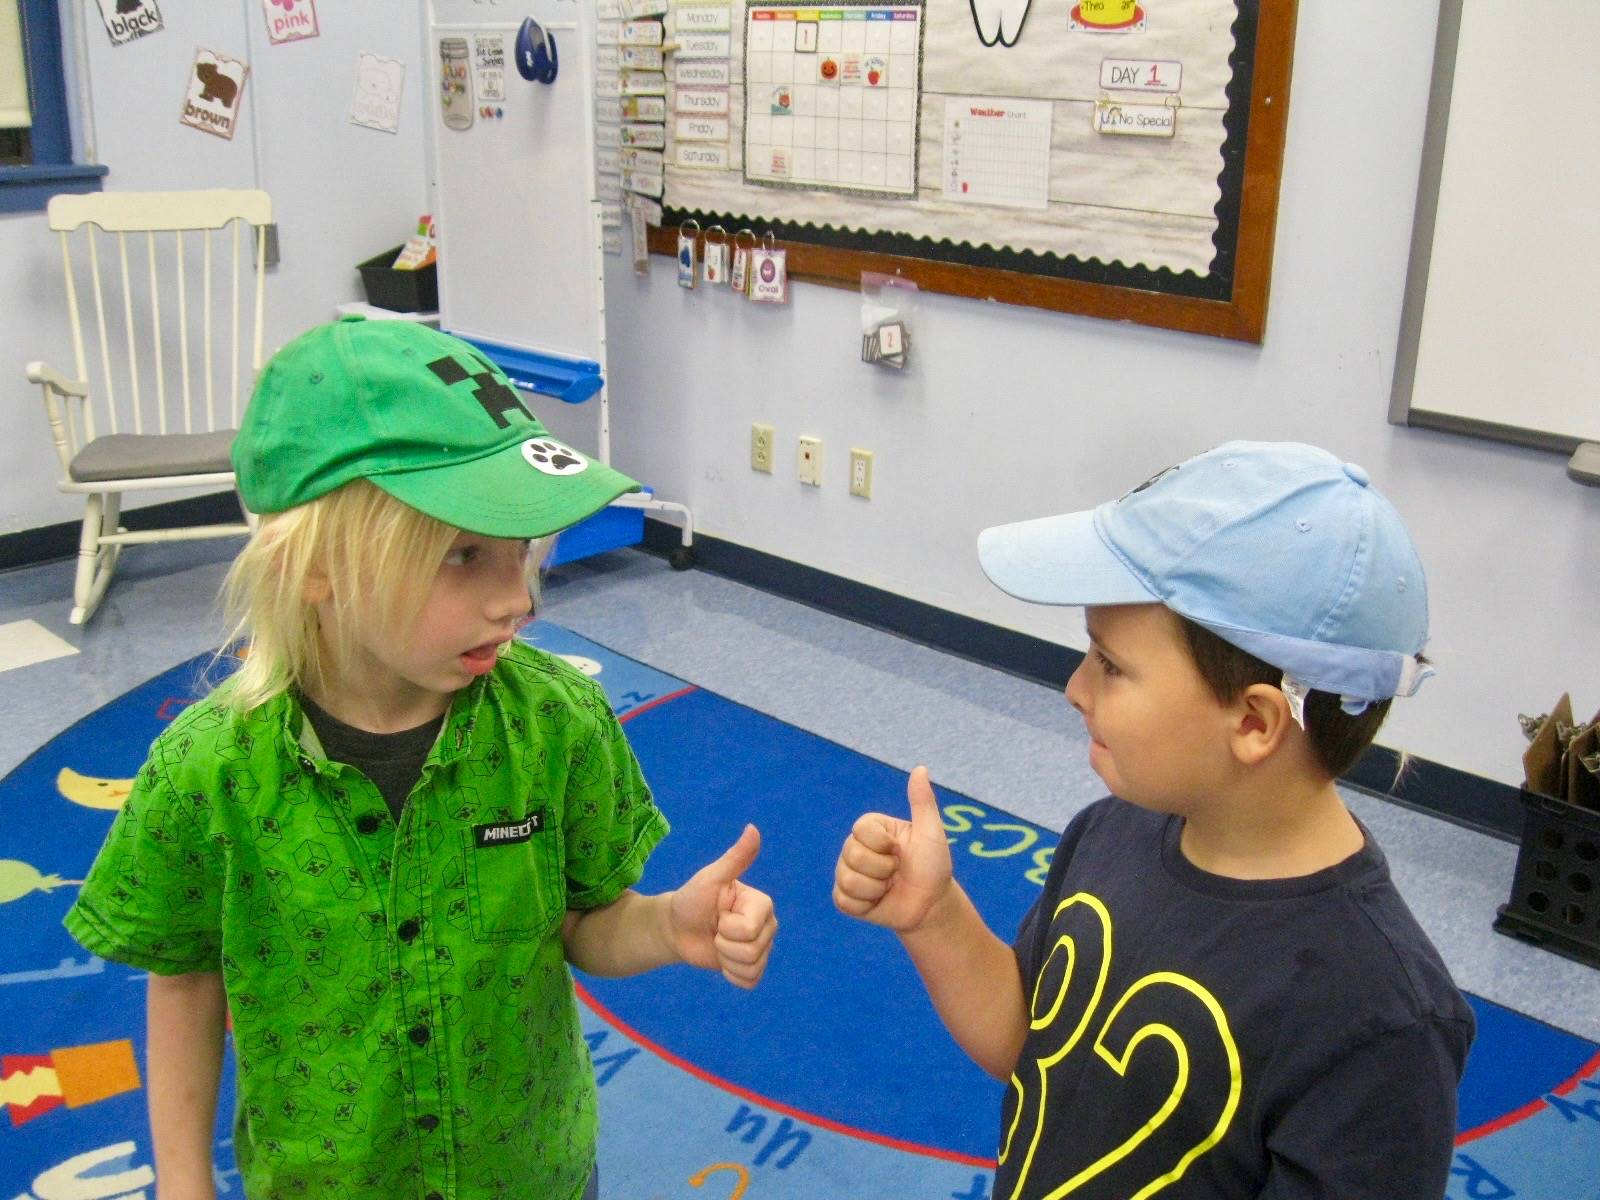 2 students giving each other a thumbs up.